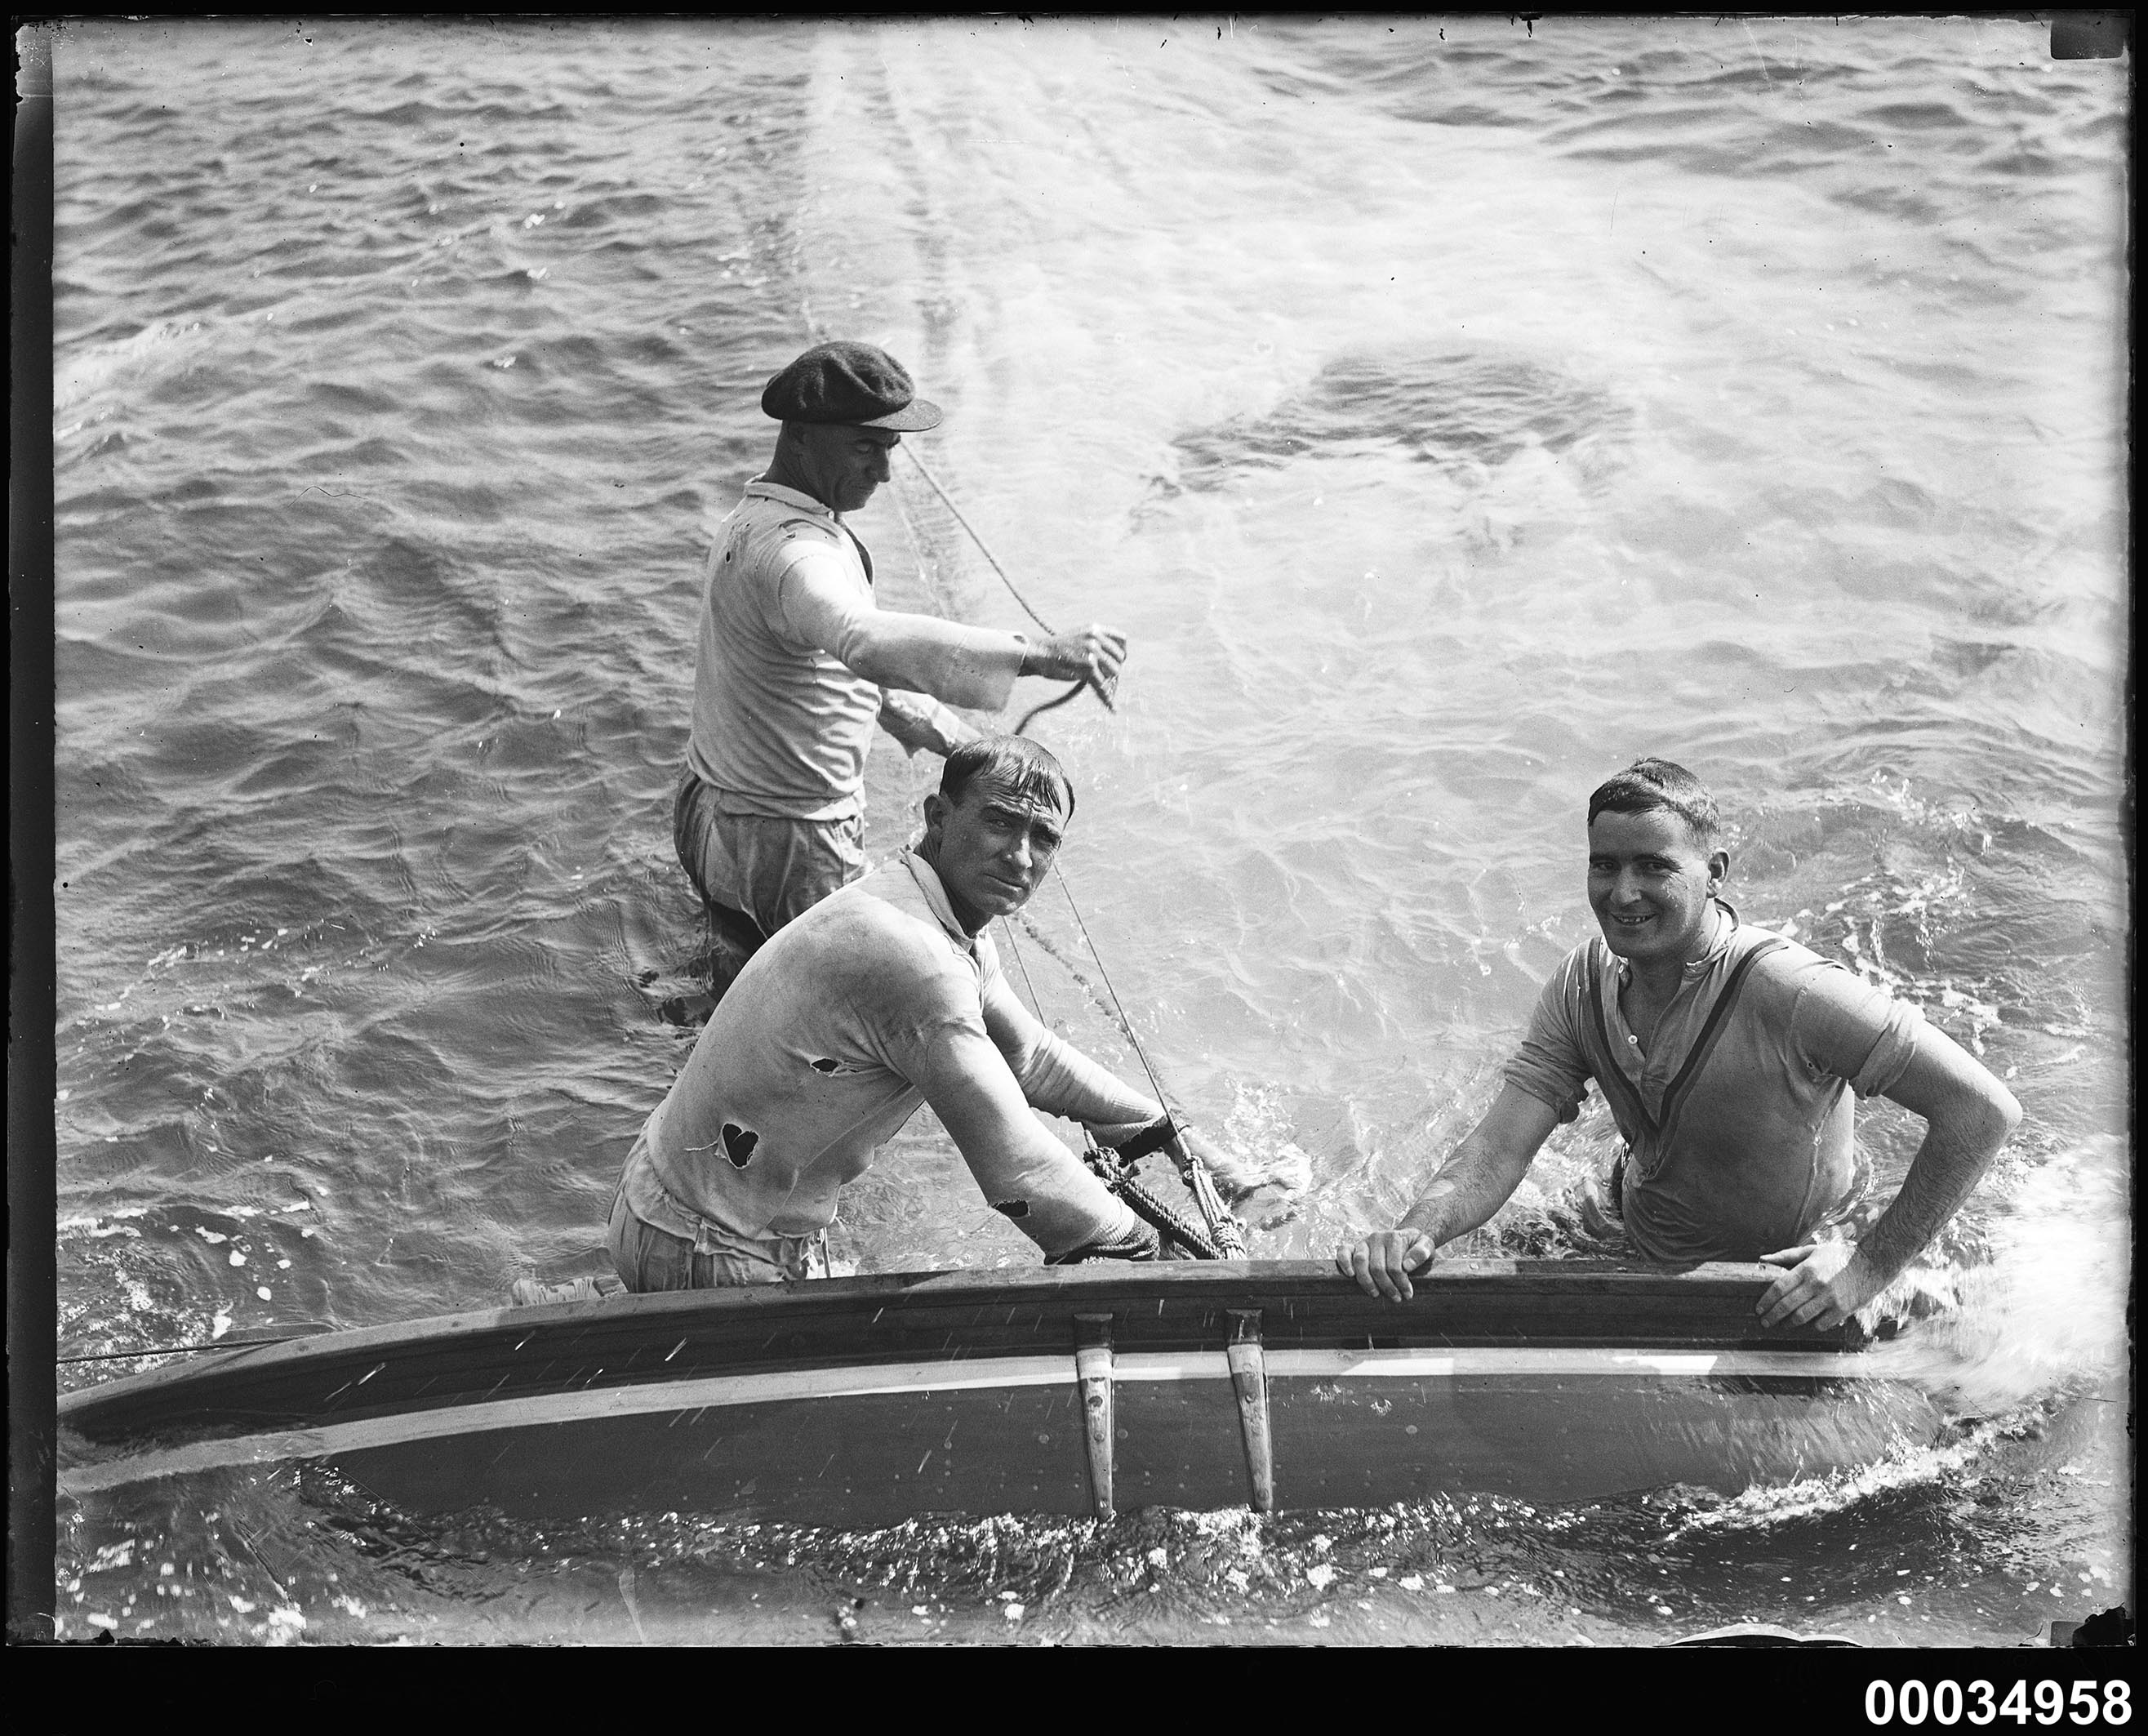 Image of three men in water with a capsized yacht